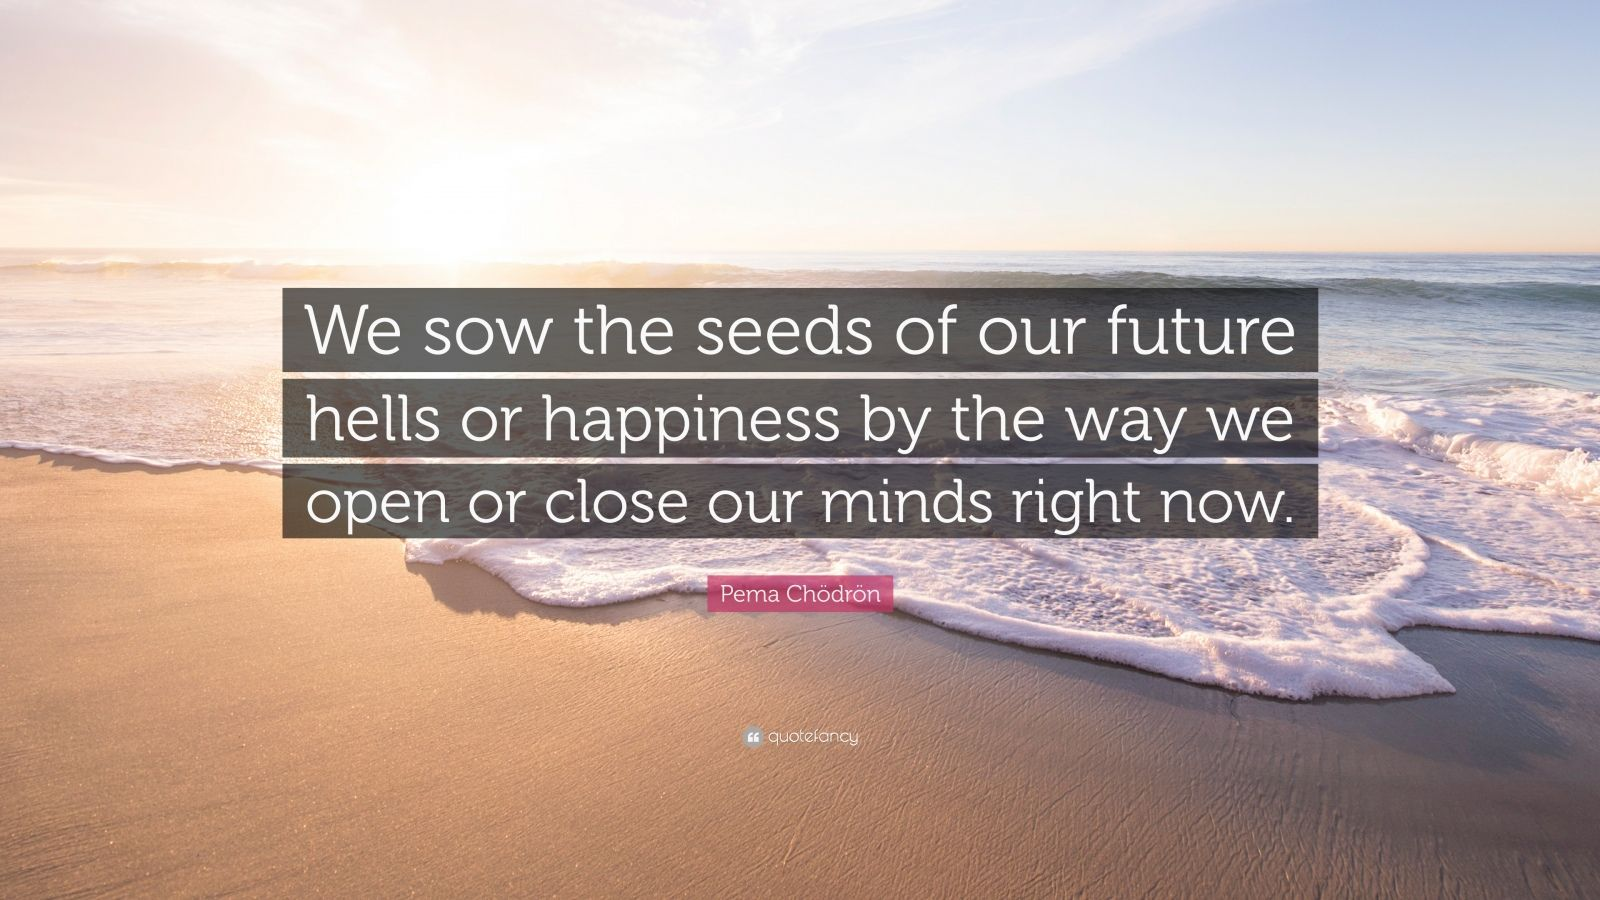 """Pema Chödrön Quote: """"We sow the seeds of our future hells or happiness by the way we open or close our minds right now."""""""